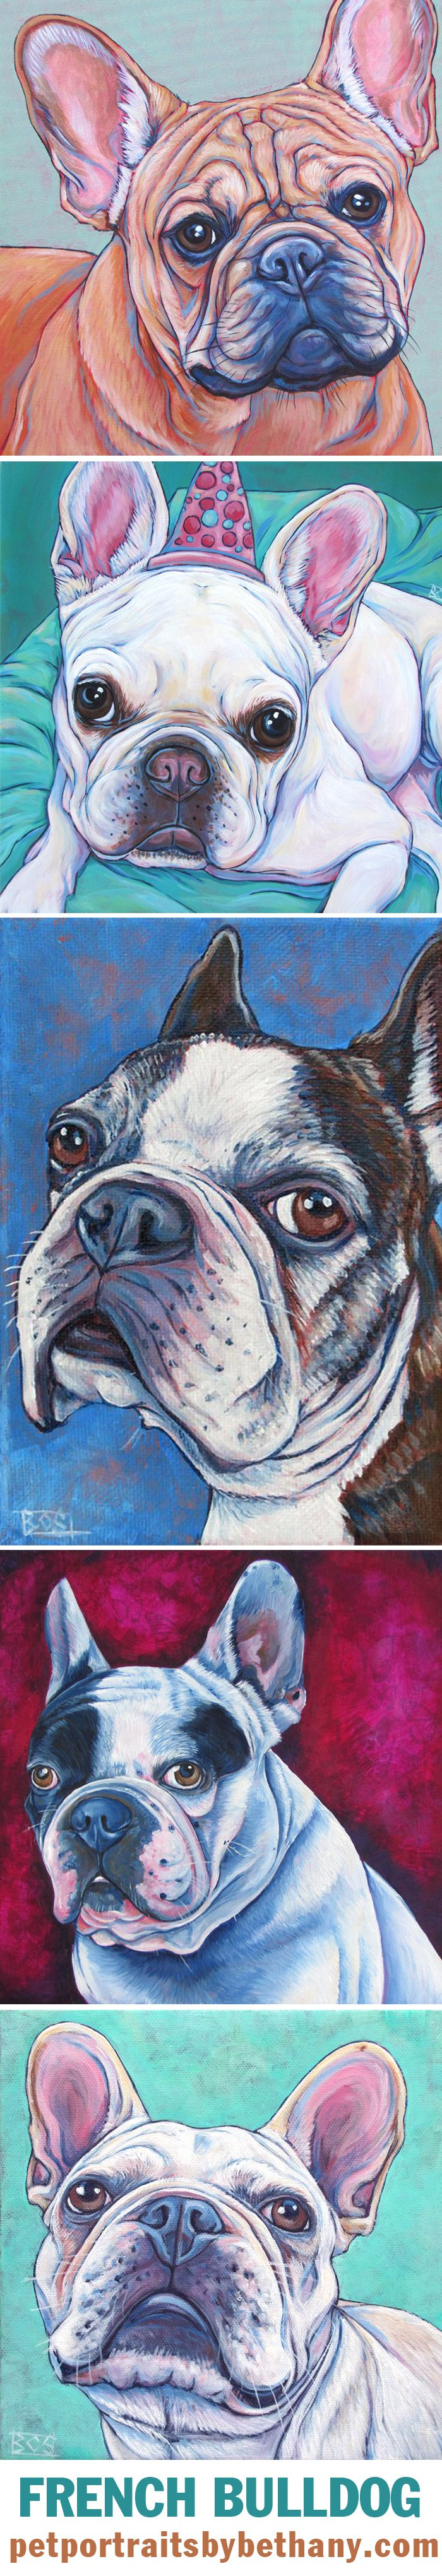 French Bulldog# by Bethany Salisbury                                                                                                                                                                                 More